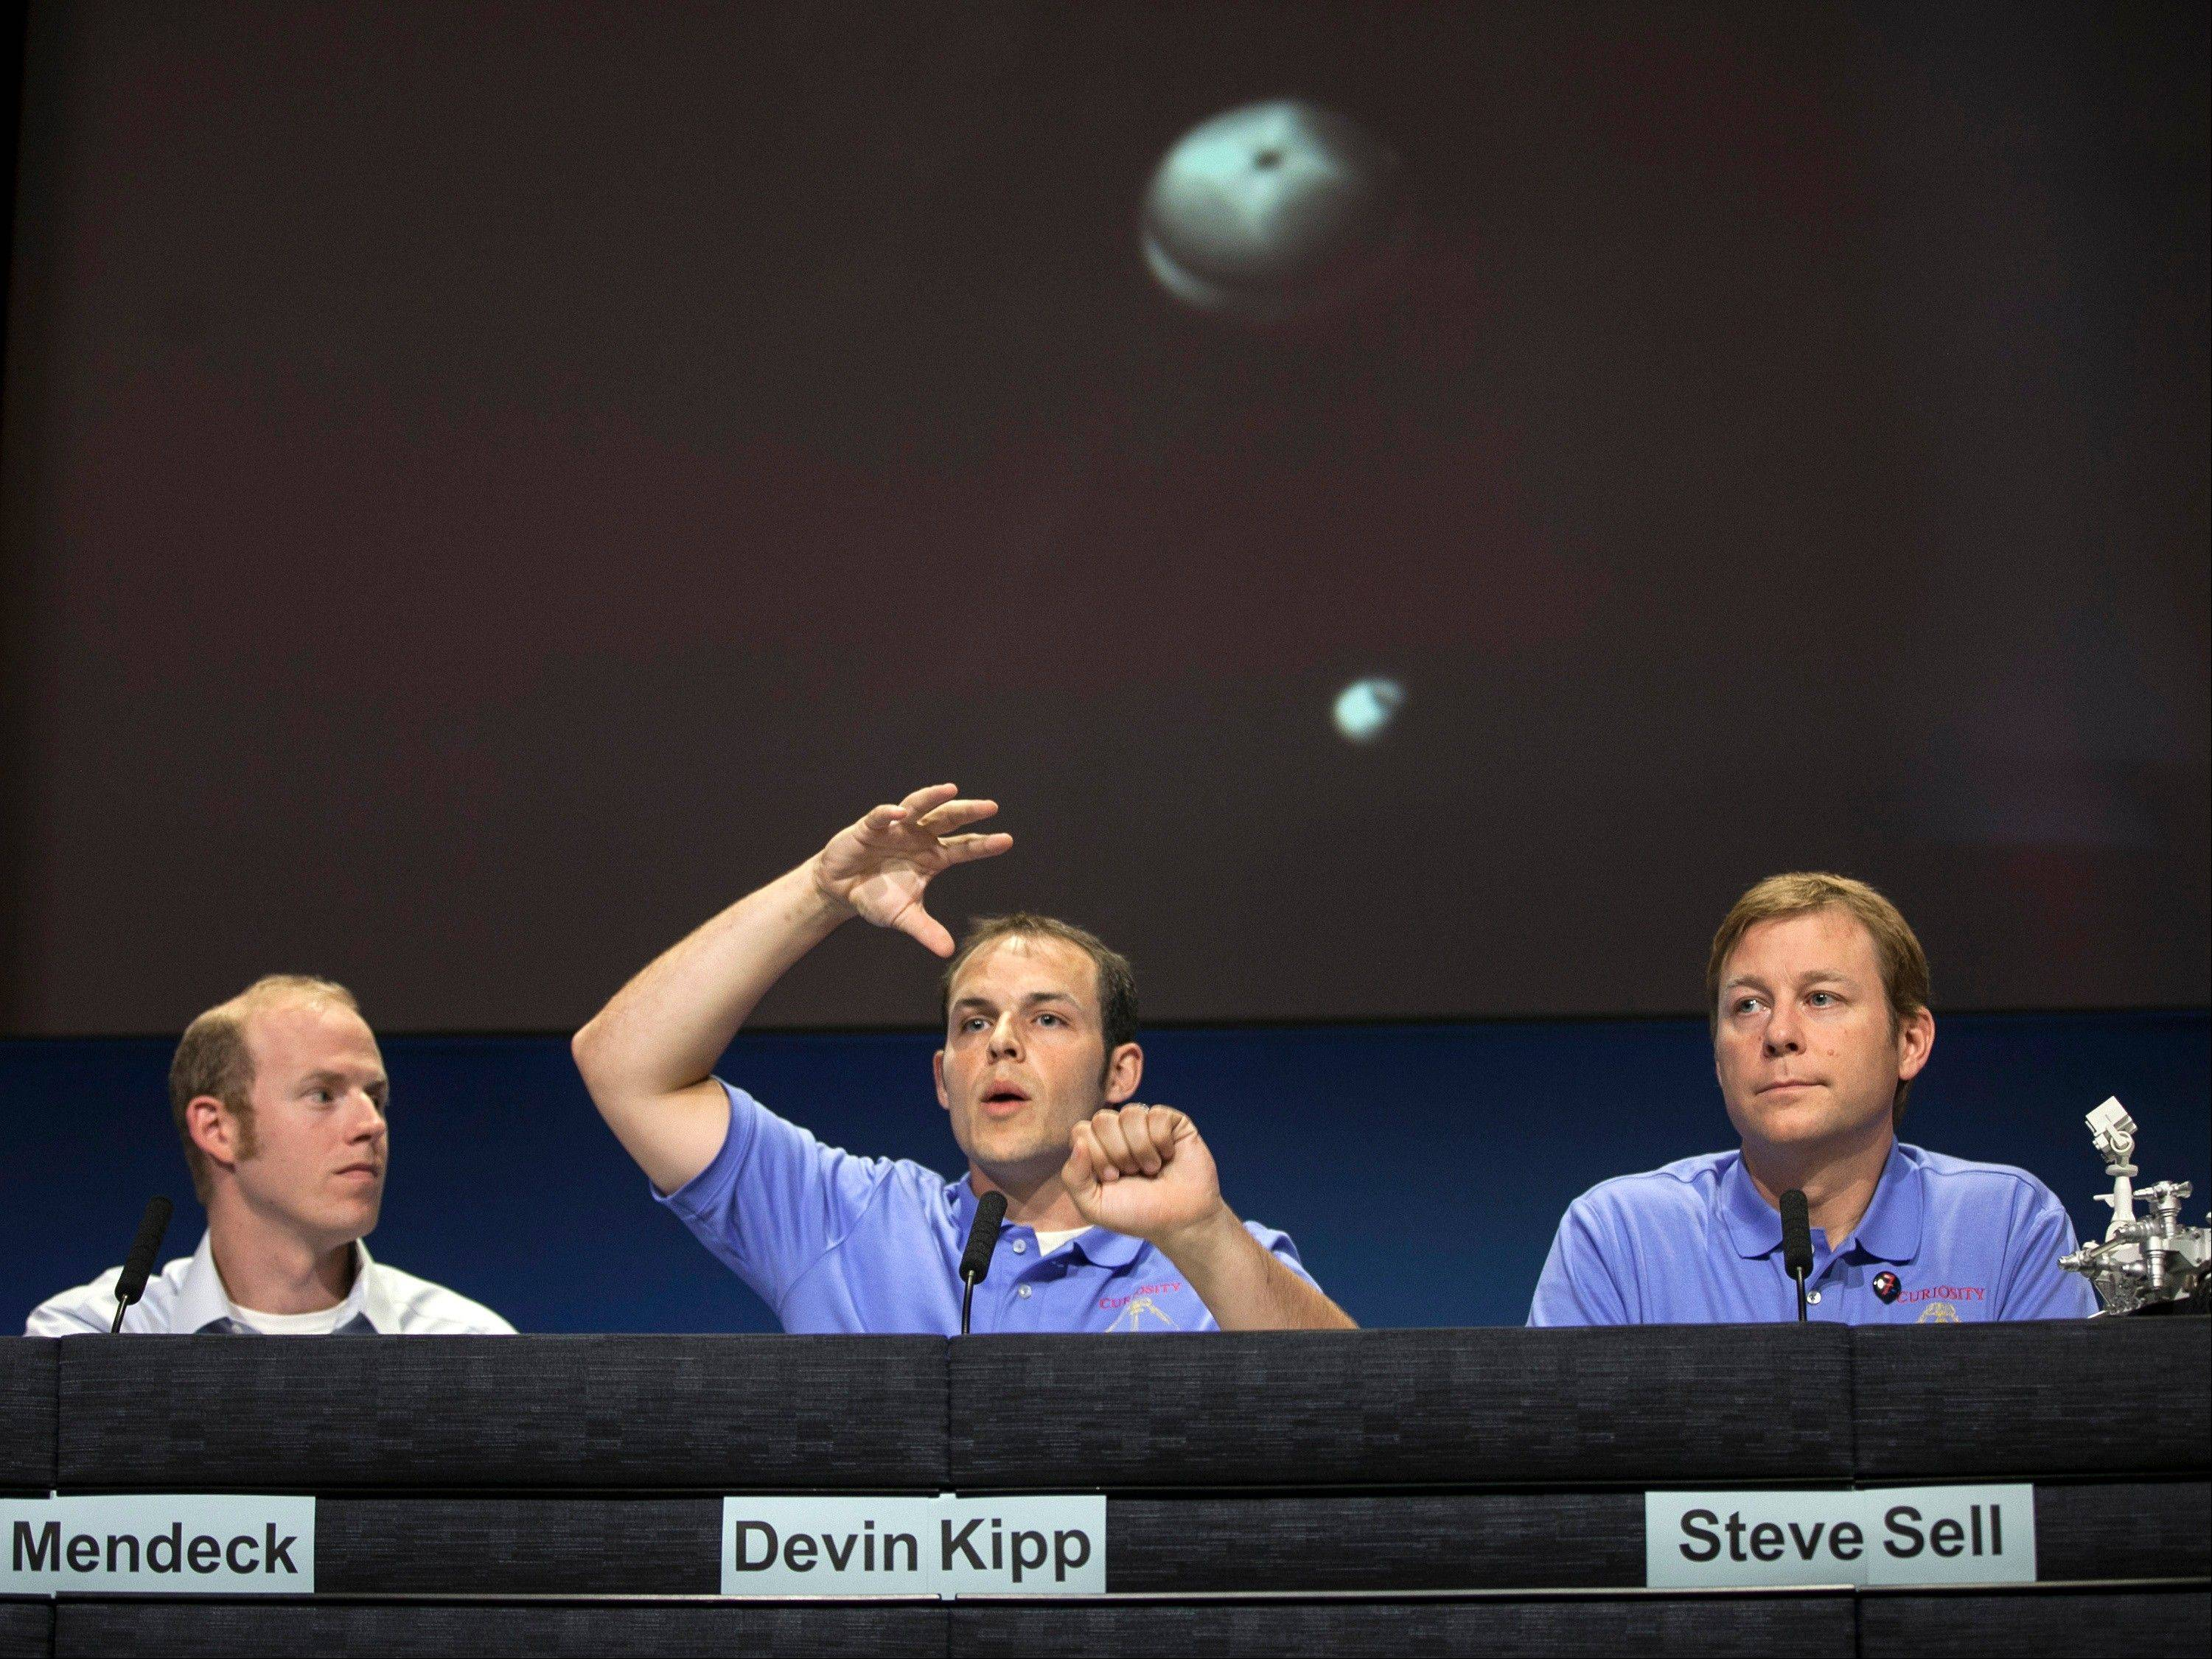 Gavin Mendeck, member of MSL entry, descent and landing team, NASA Johnson Space Center, Houston, Devin Kipp, member of MSL entry, descent and landing team, JPL and Steve Sell, member of MSL entry, descent and landing team, JPL, describe the timing of the MSL parachute deployment during Curiosity Mars landing.